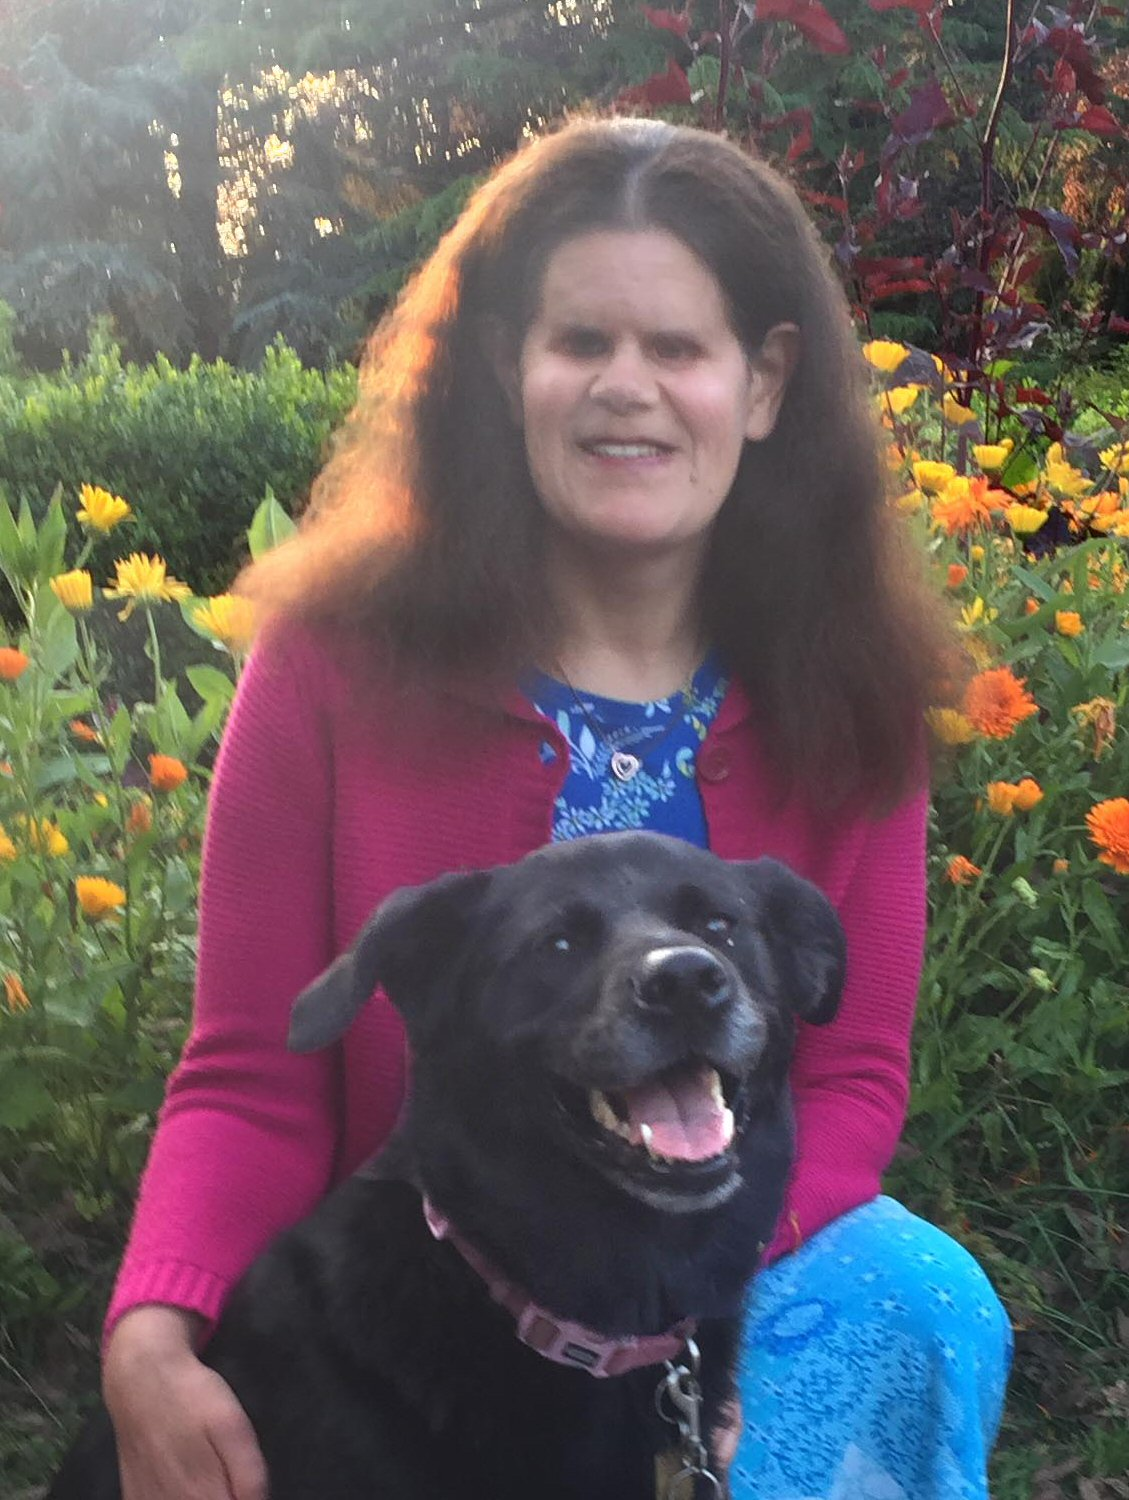 Abby is wearing a blue and white patterned top, dark pink collared cardigan, and light blue patterned skirt, and a heart necklace. She is pictured with her black german sheperd - golden retriever guide dog, who is wearing a pink collar with guide dor tag showing. Both are smiling broadly at the camera. The background is a bed of bright orange marigolds, a low hedge and tall trees.